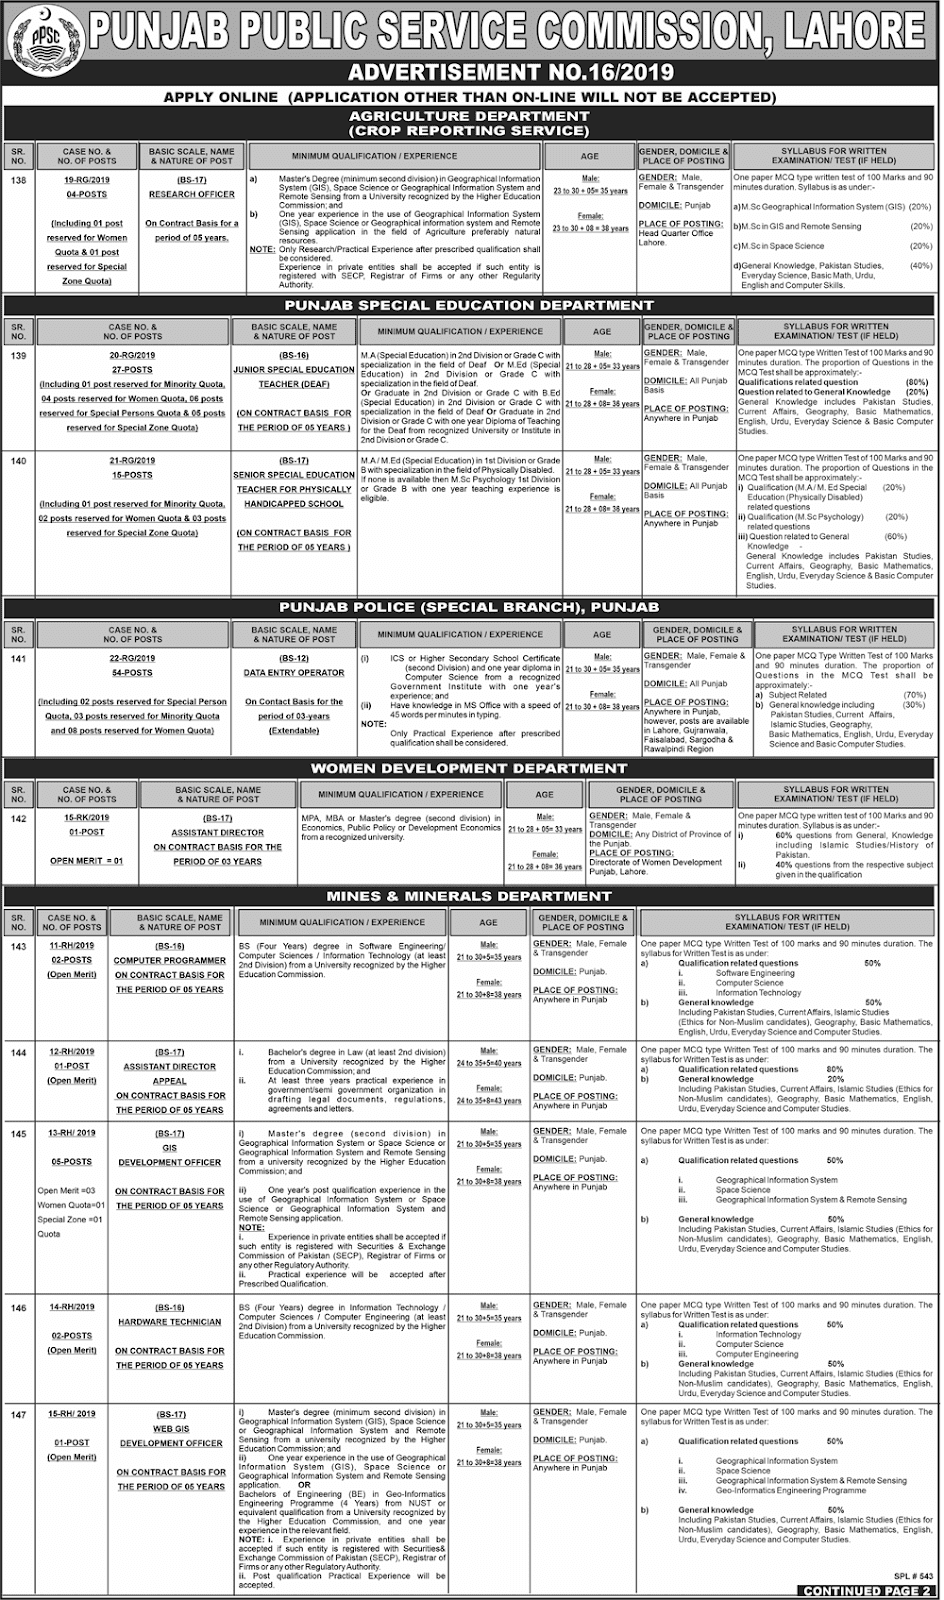 PPSC Advertisement 16/2019 Page No. 1/3